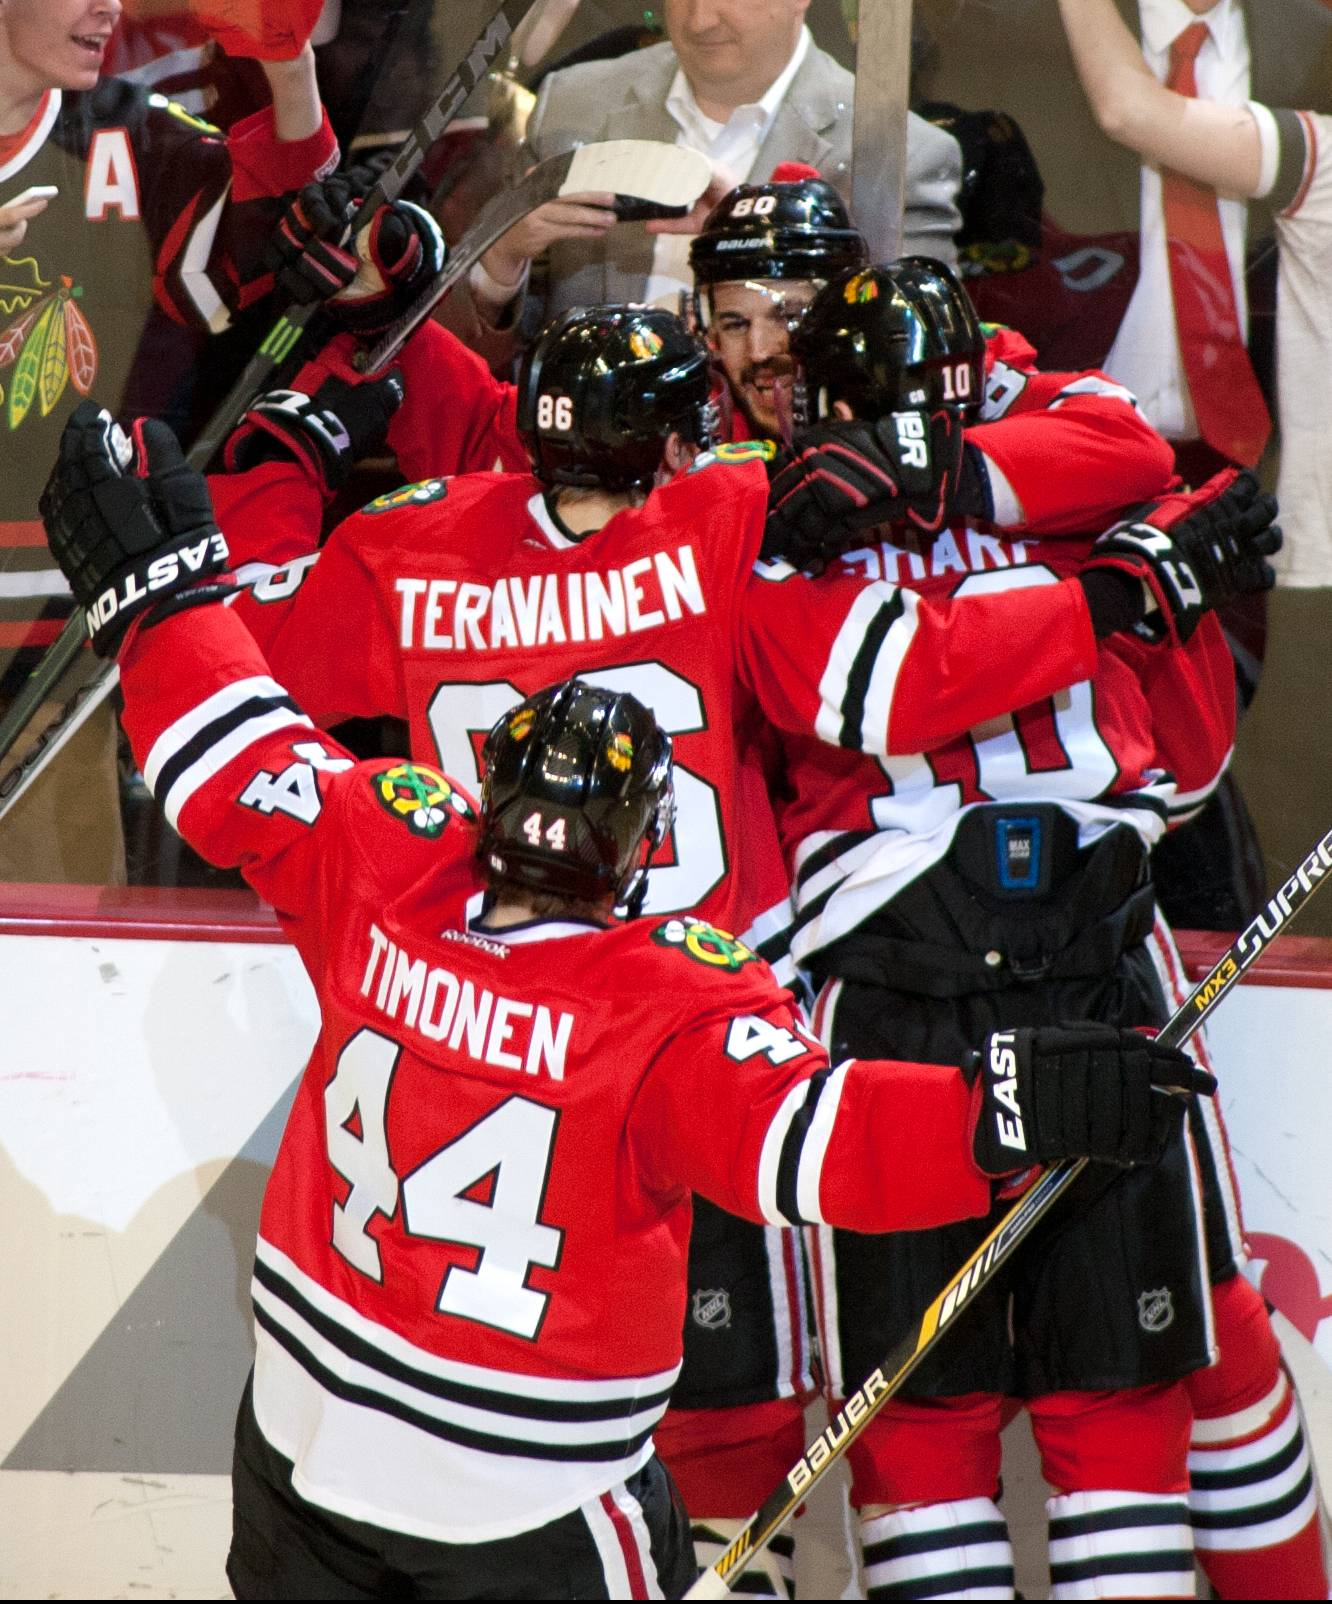 Chicago Blackhawks center Antoine Vermette is mobbed by teammates who celebrate his double overtime 5-4 game winning goal over the Anaheim Ducks during Game 4 of the NHL Western Conference finals on Saturday, May 23, 2015 at the United Center.